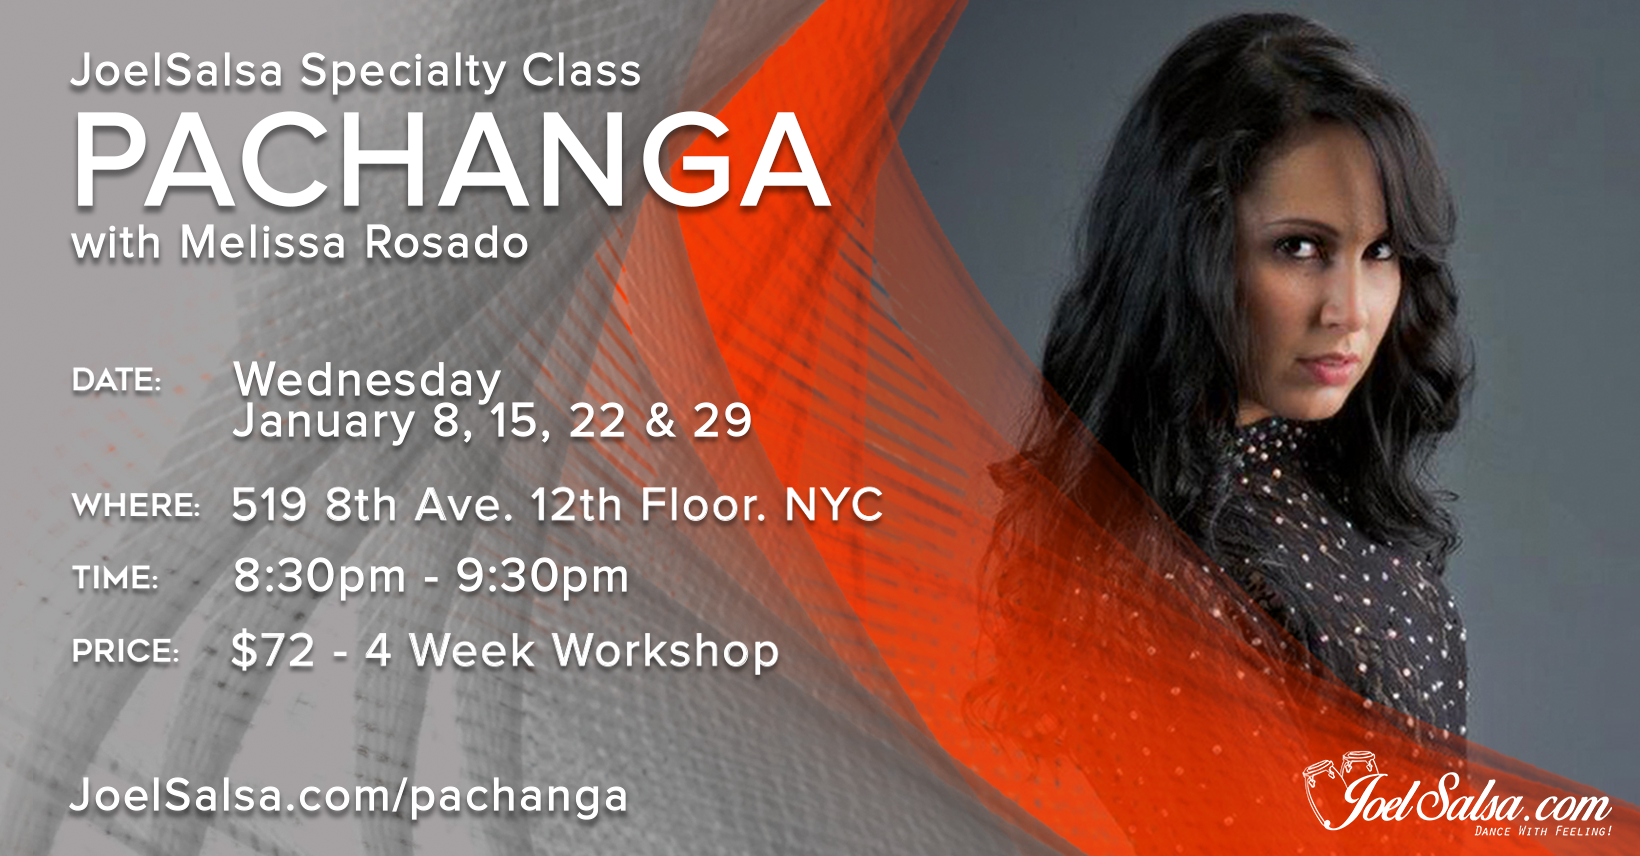 Pachanga With Melissa Rosado - JoelSalsa Specialty Classes January 2020